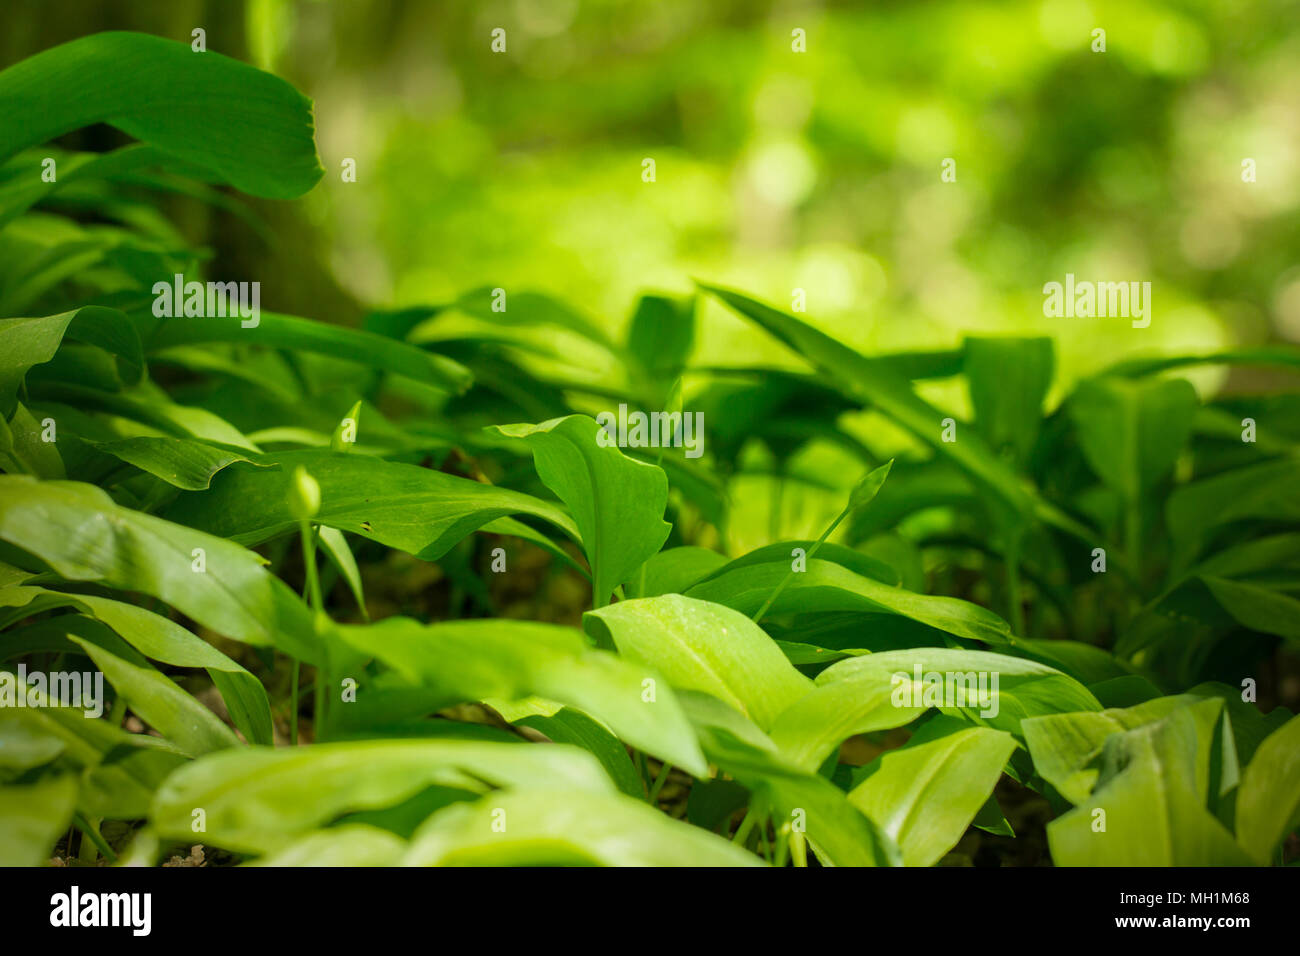 wild garlic plant - Stock Image